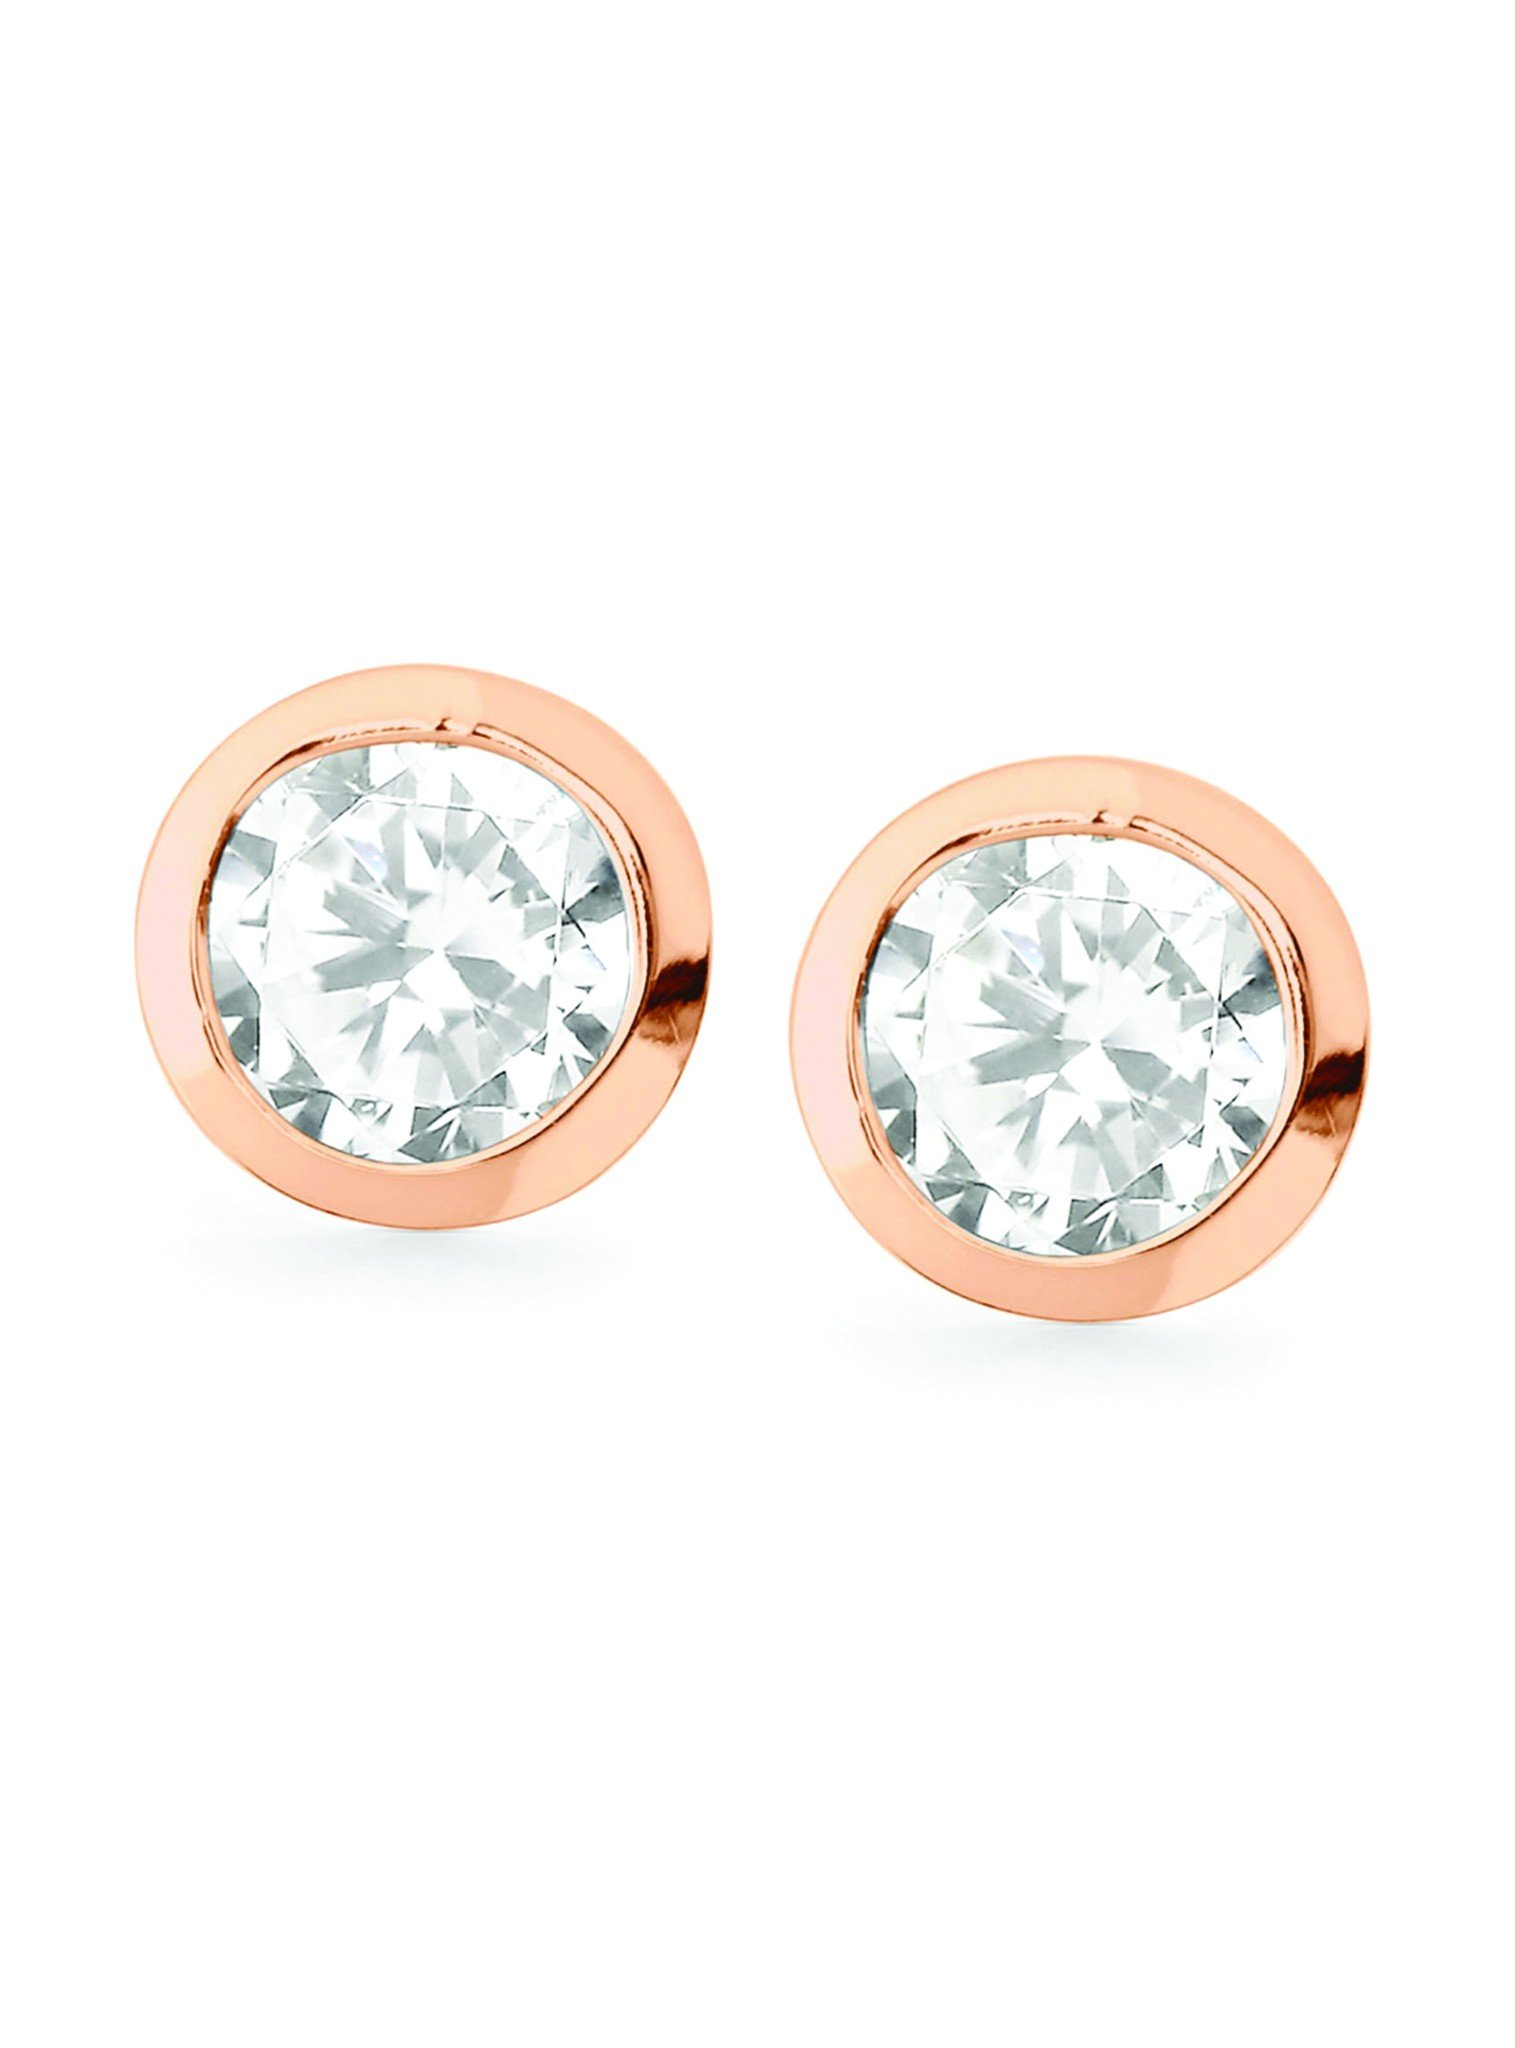 North Star stud earrings in silver rose gold plated